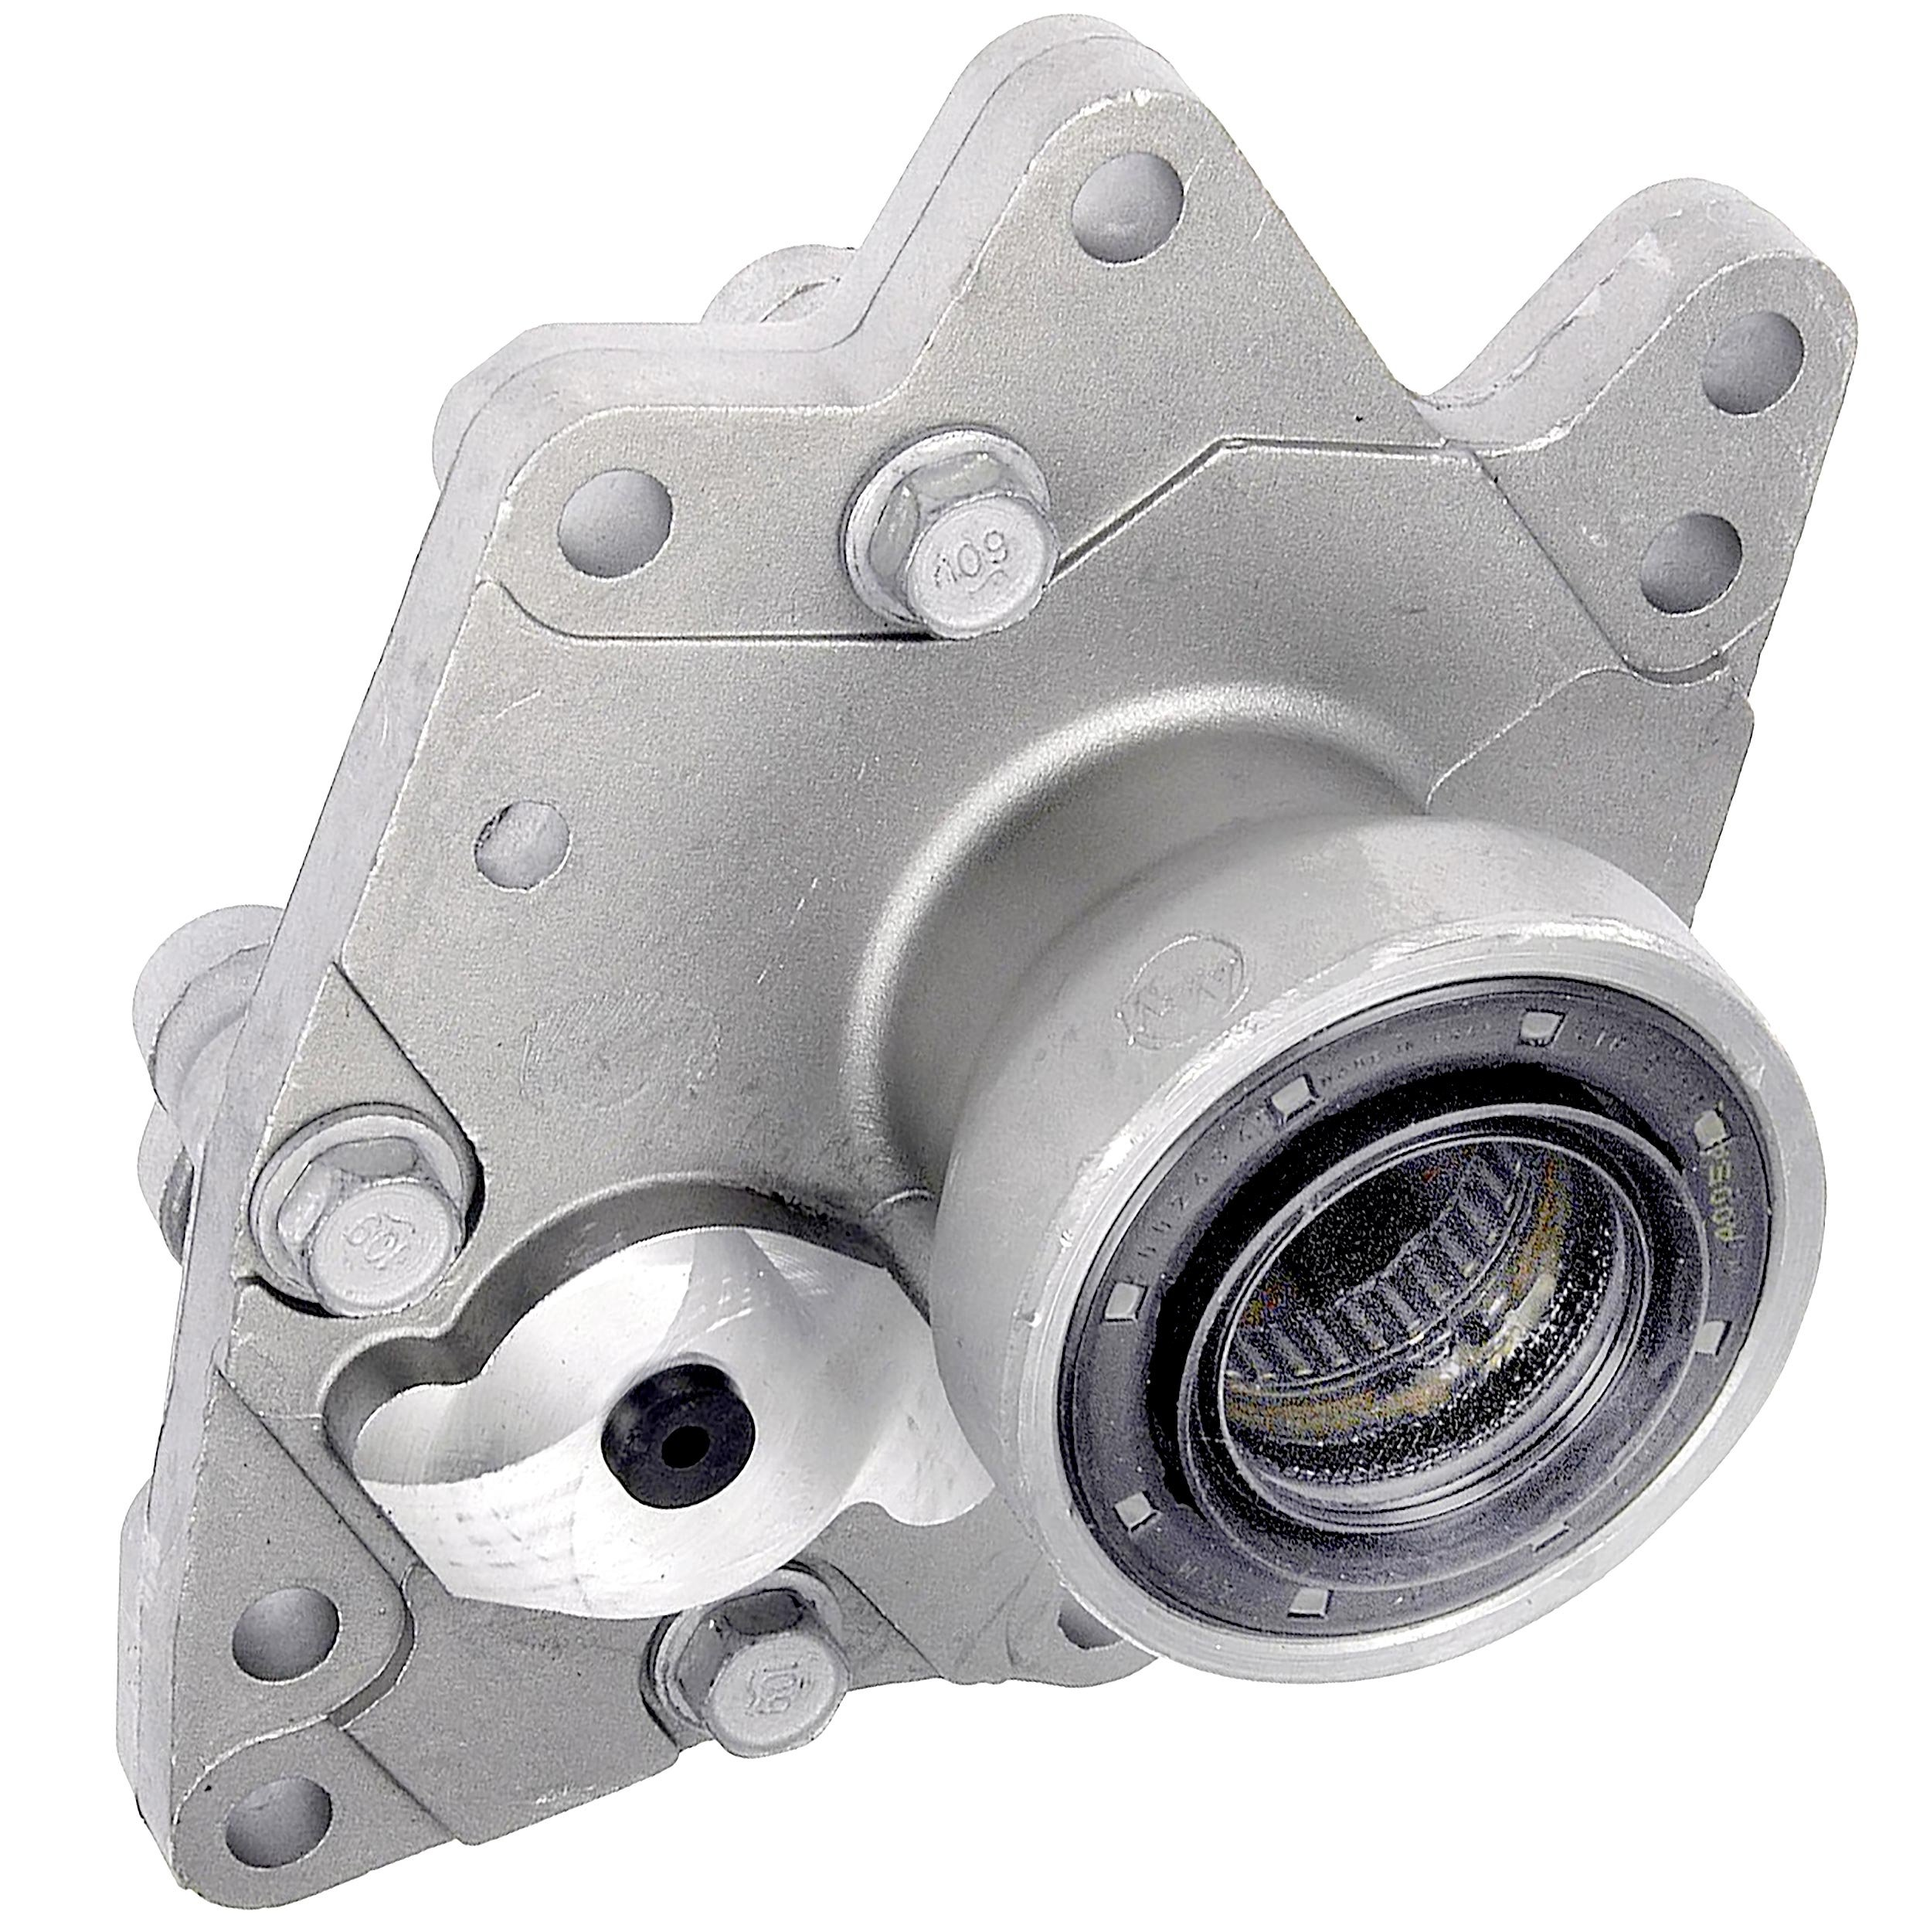 APDTY 711227 AWD Axle Disconnect Intermediate Shaft Bearing Assembly (Replaces GM 15884291, 12471623, 12471625, 12471633, 12471636, 12479197, 12479302, 15801507, 26053326)